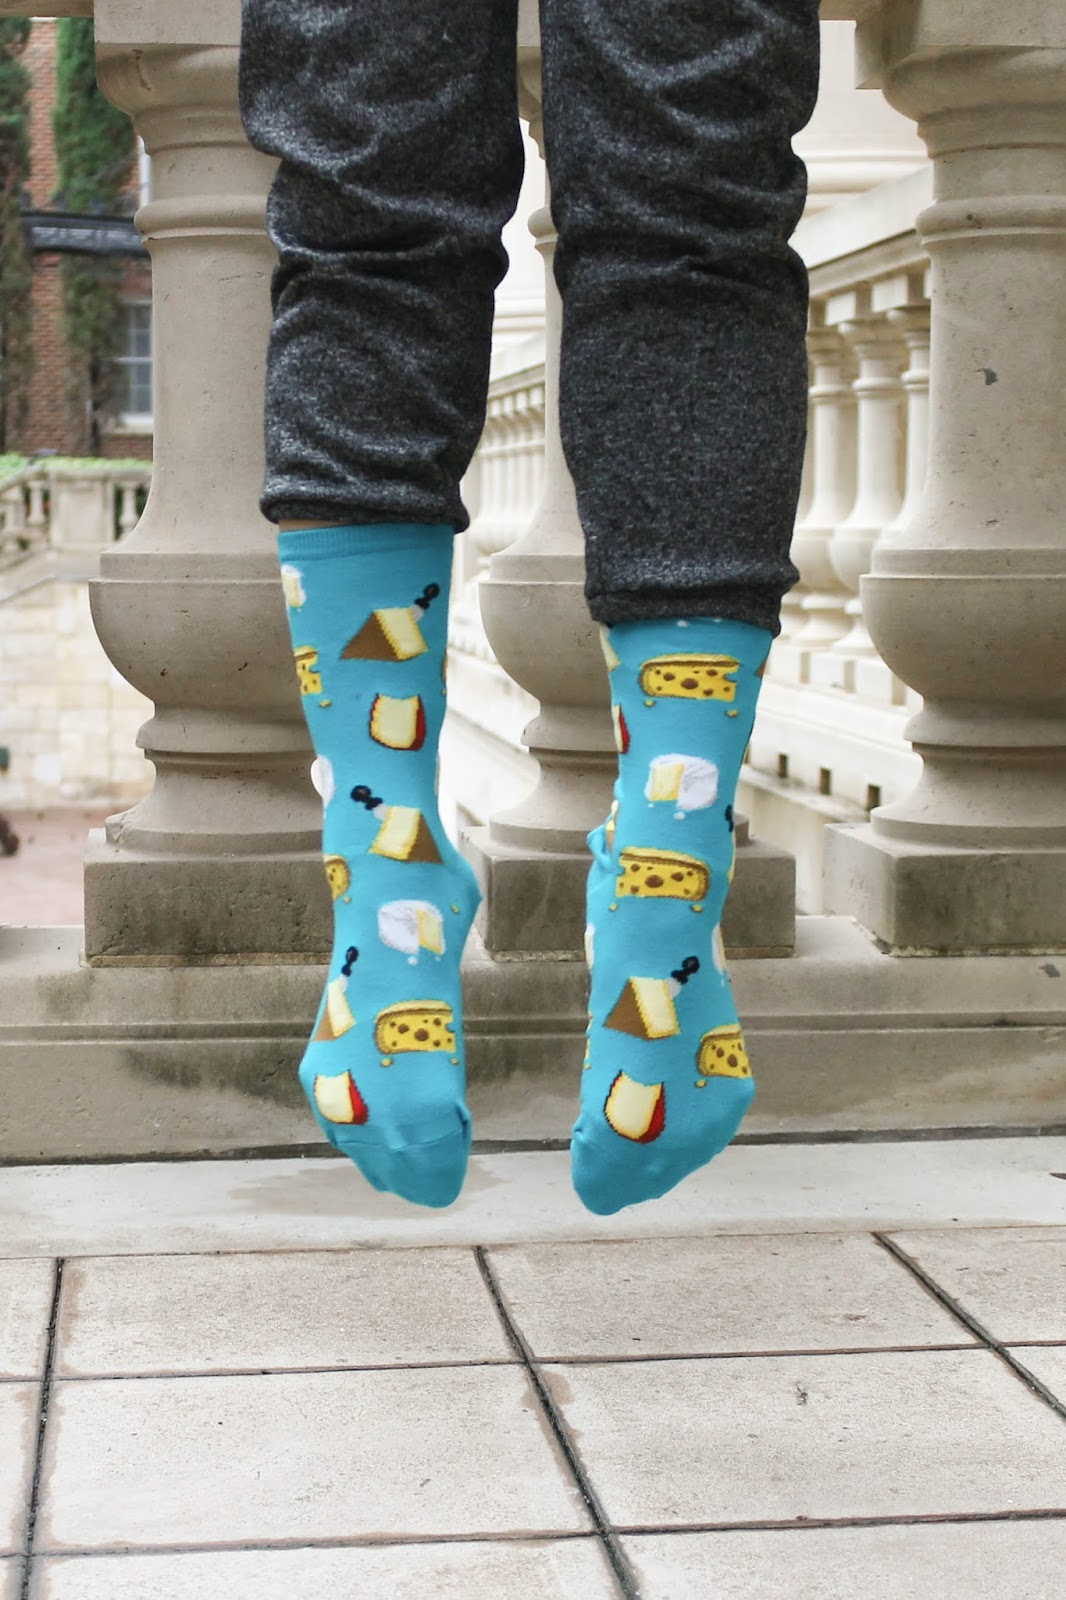 The Hot Sox Co cheese socks